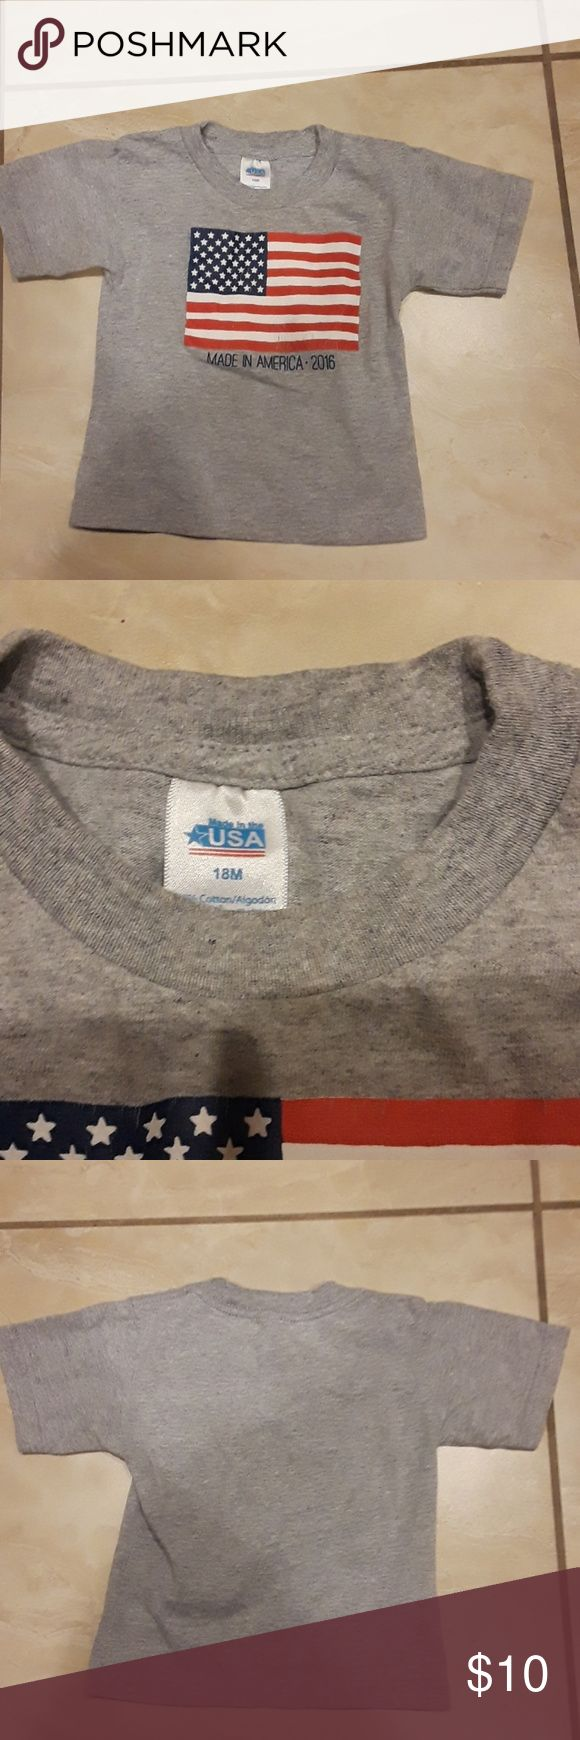 MADE IN AMERICA 2016 TEE SIZE 18 MONTHS MADE IN AMERICA 2016 TEE SIZE 18 MONTHS GREY WITH A PICTURE OF THE AMERICAN FLAG. WORN ONLY ONCE - IN PERFECT CONDITION. WILLING TO BUNDLE WITH SELECT ITEMS AND PRICE IS ALWAYS NEGOTIABLE! usa Shirts & Tops Tees - Short Sleeve